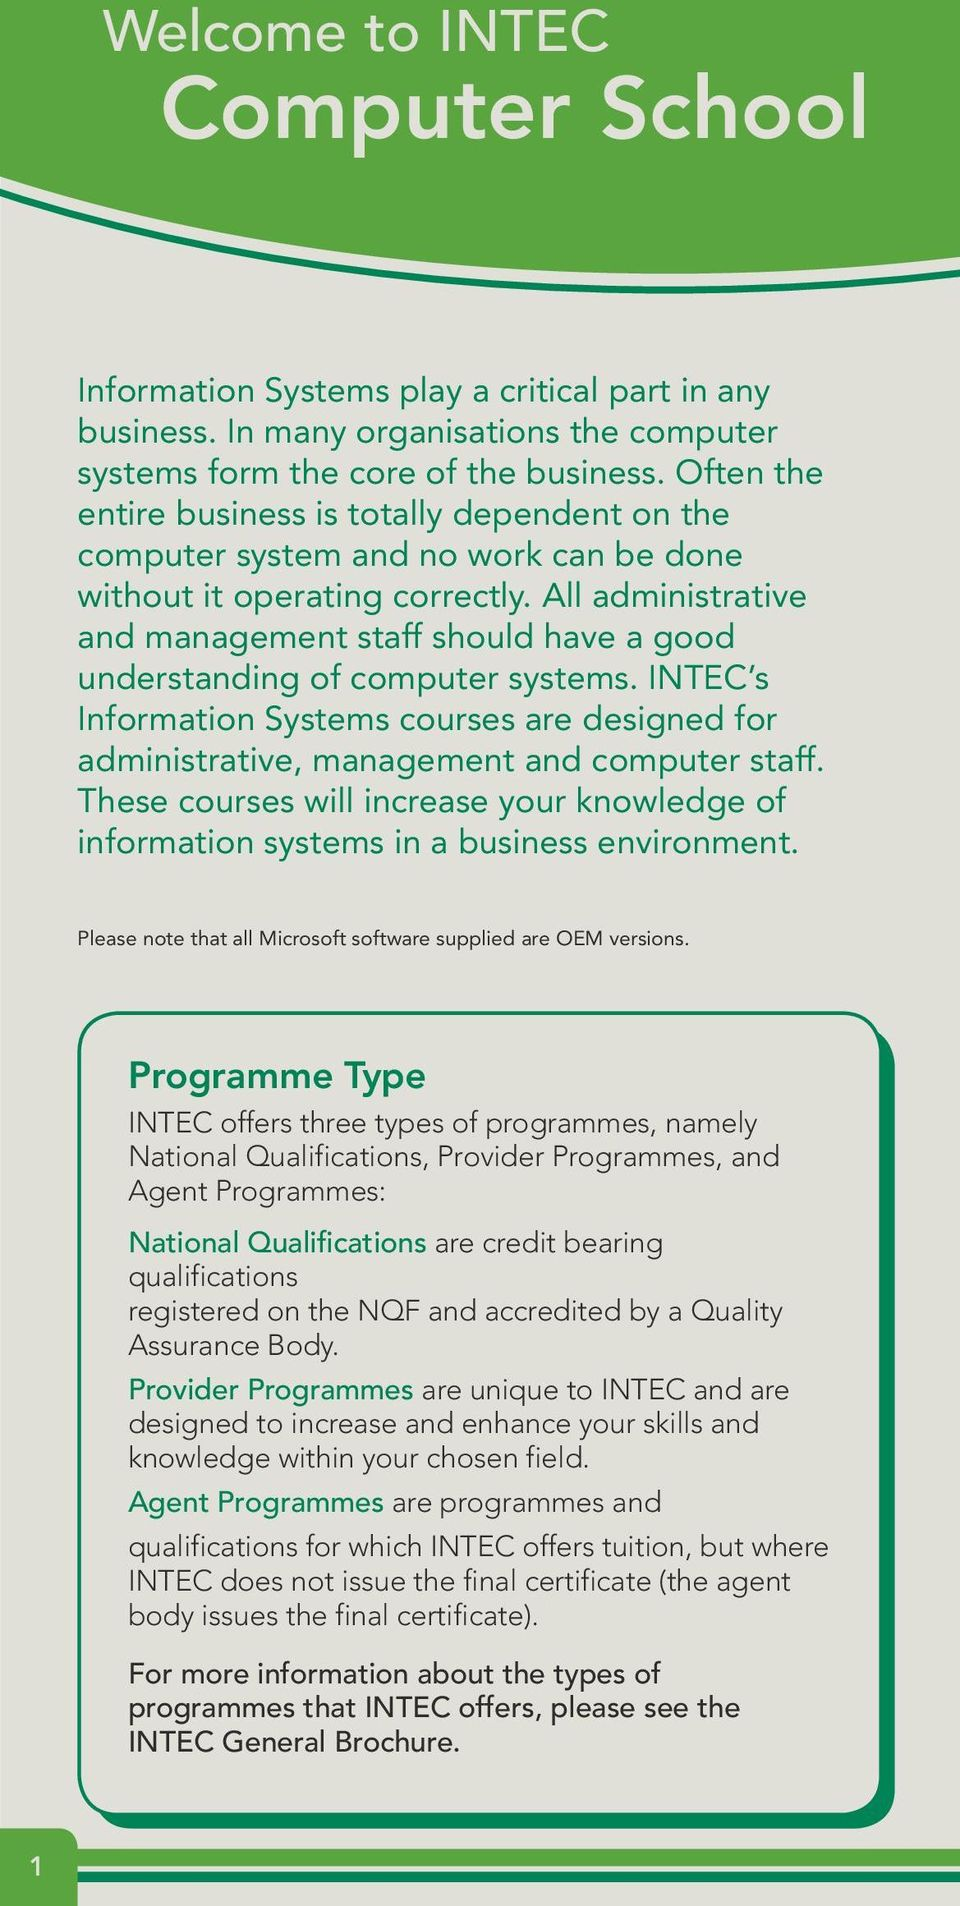 All administrative and management staff should have a good understanding of computer systems. INTEC s Information Systems courses are designed for administrative, management and computer staff.